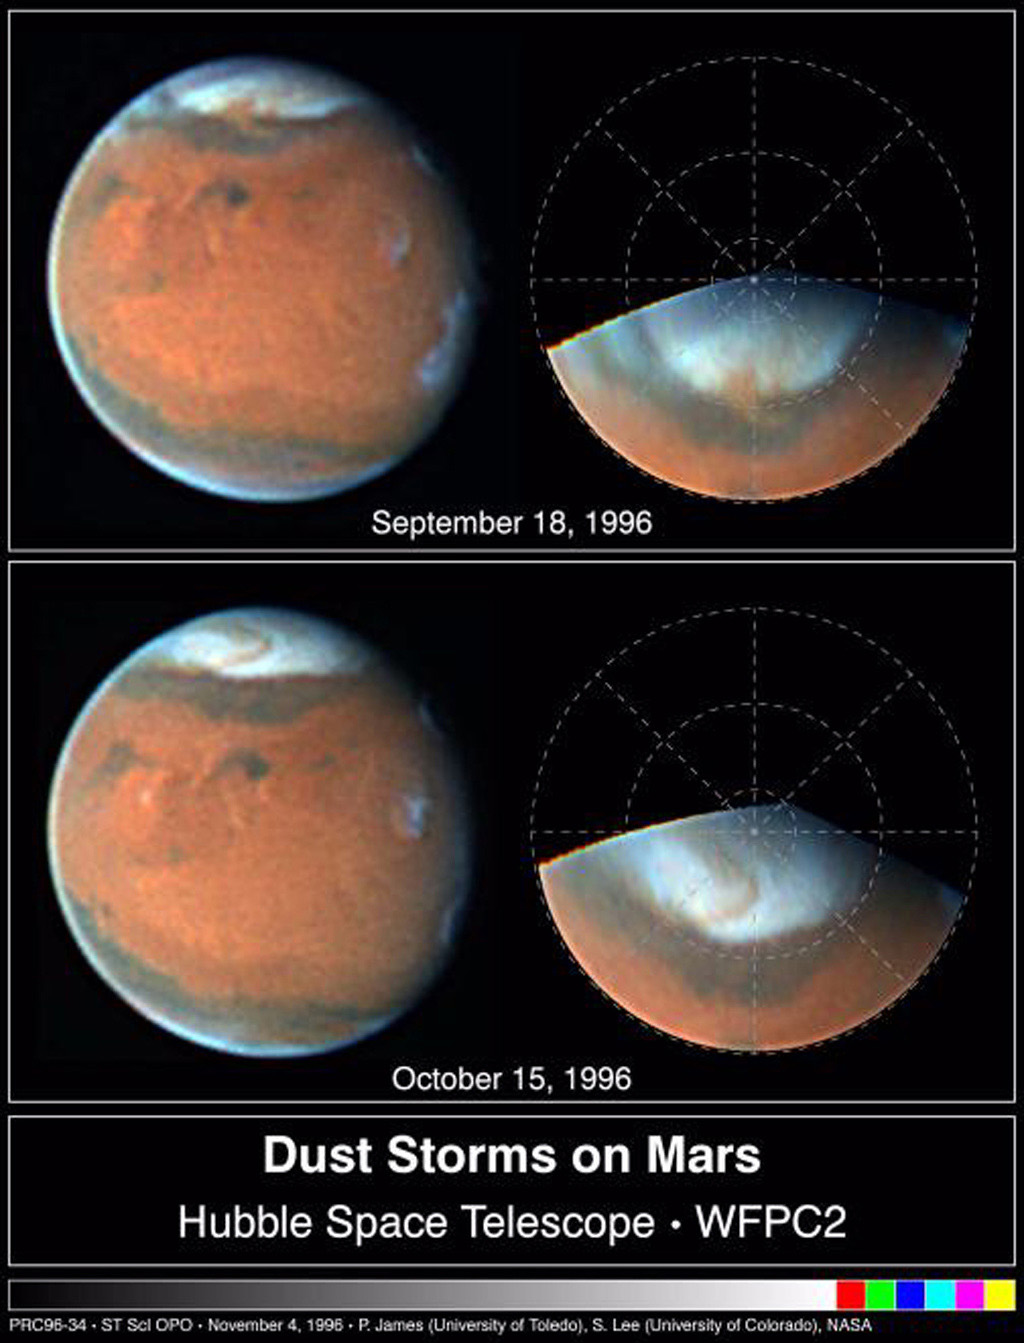 Two NASA Hubble Space Telescope images of Mars, taken about a month apart on September 18 and October 15, 1996, reveal a state-sized dust storm churning near the edge of the Martian north polar cap.